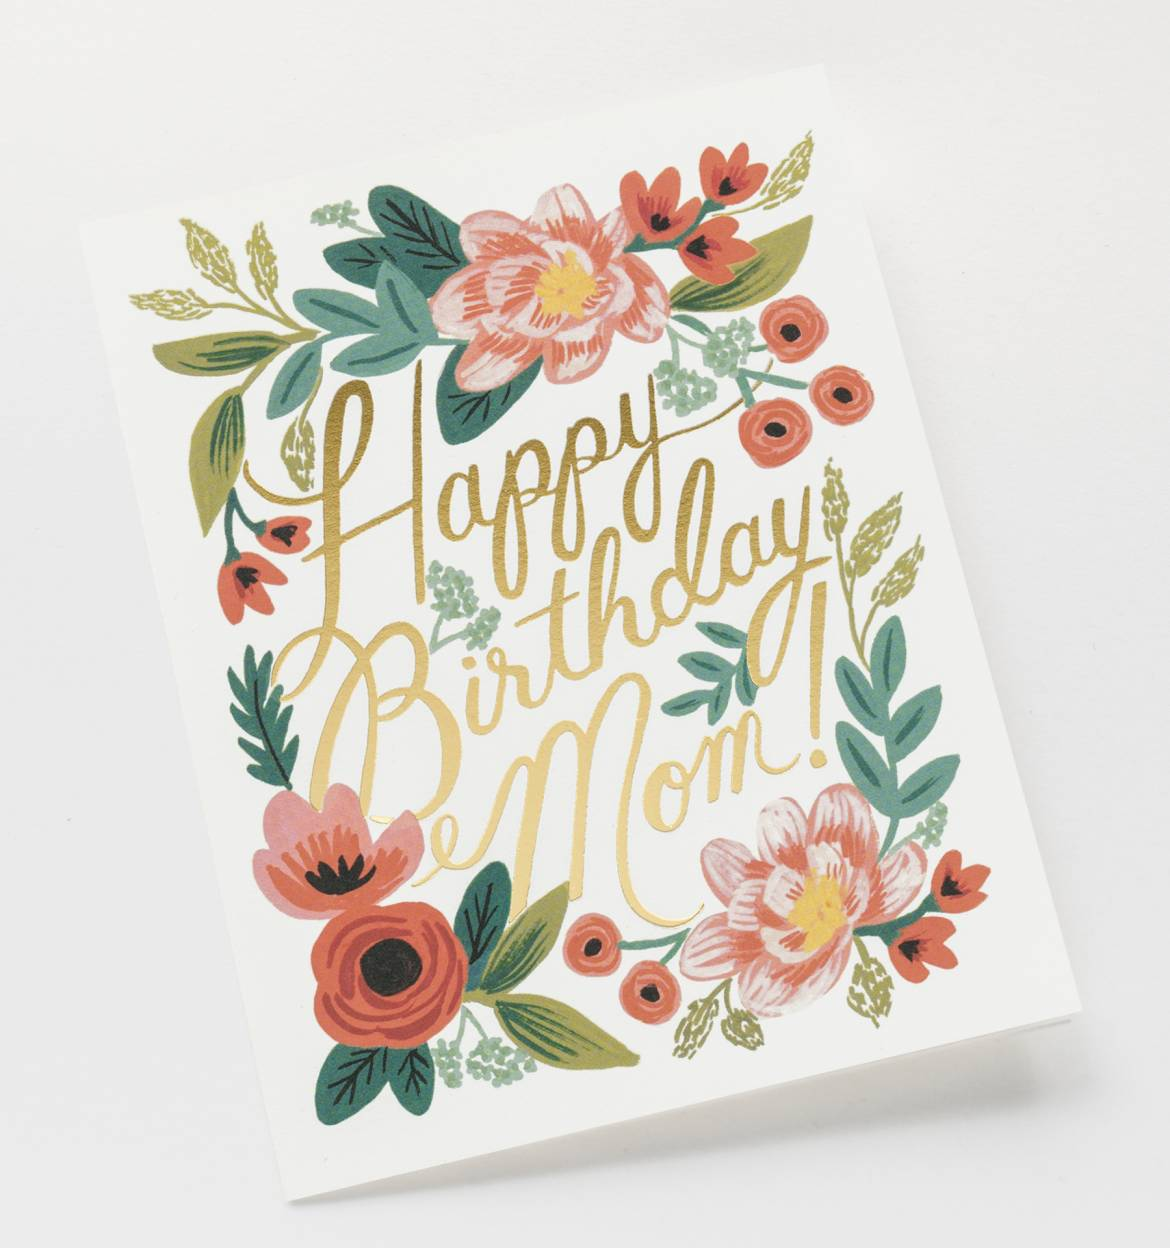 happy birthday card design images ; Happy-Birthday-Cards-For-Mom-with-lovely-appearance-for-lovely-Birthday-card-design-ideas-16